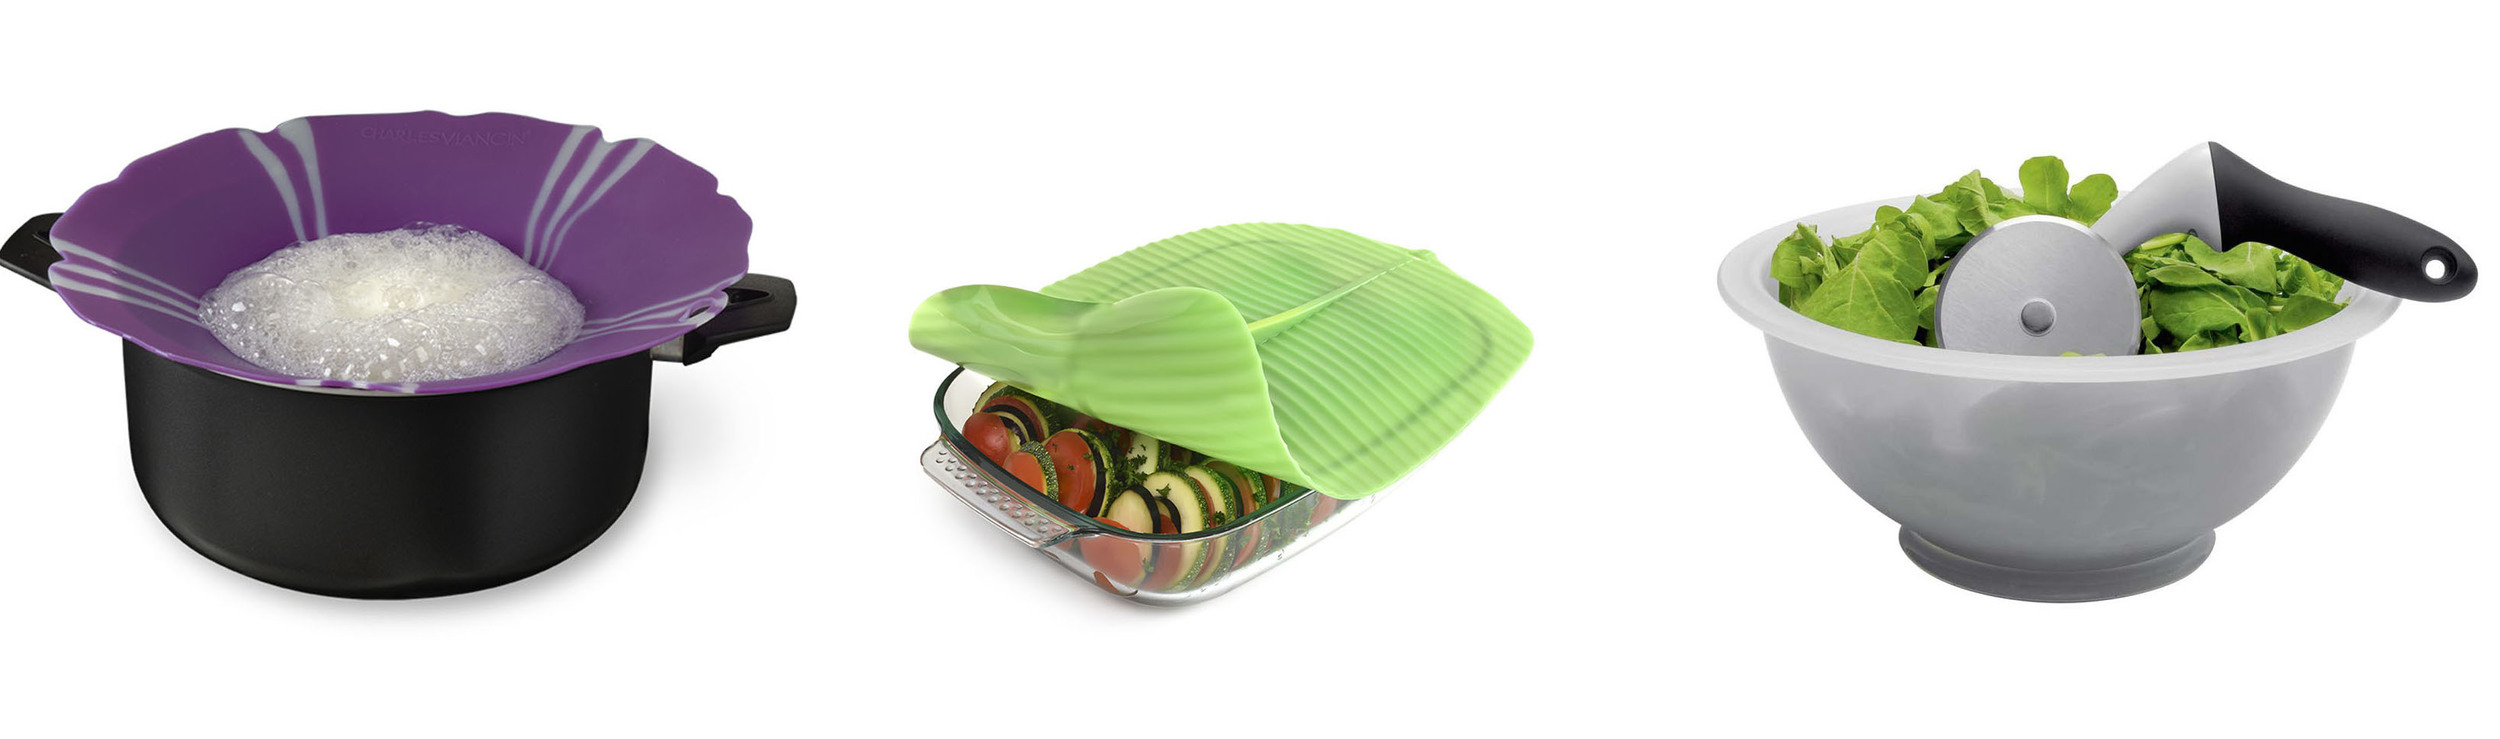 Over boil ring, silicone lid, in-bowl salad chopper